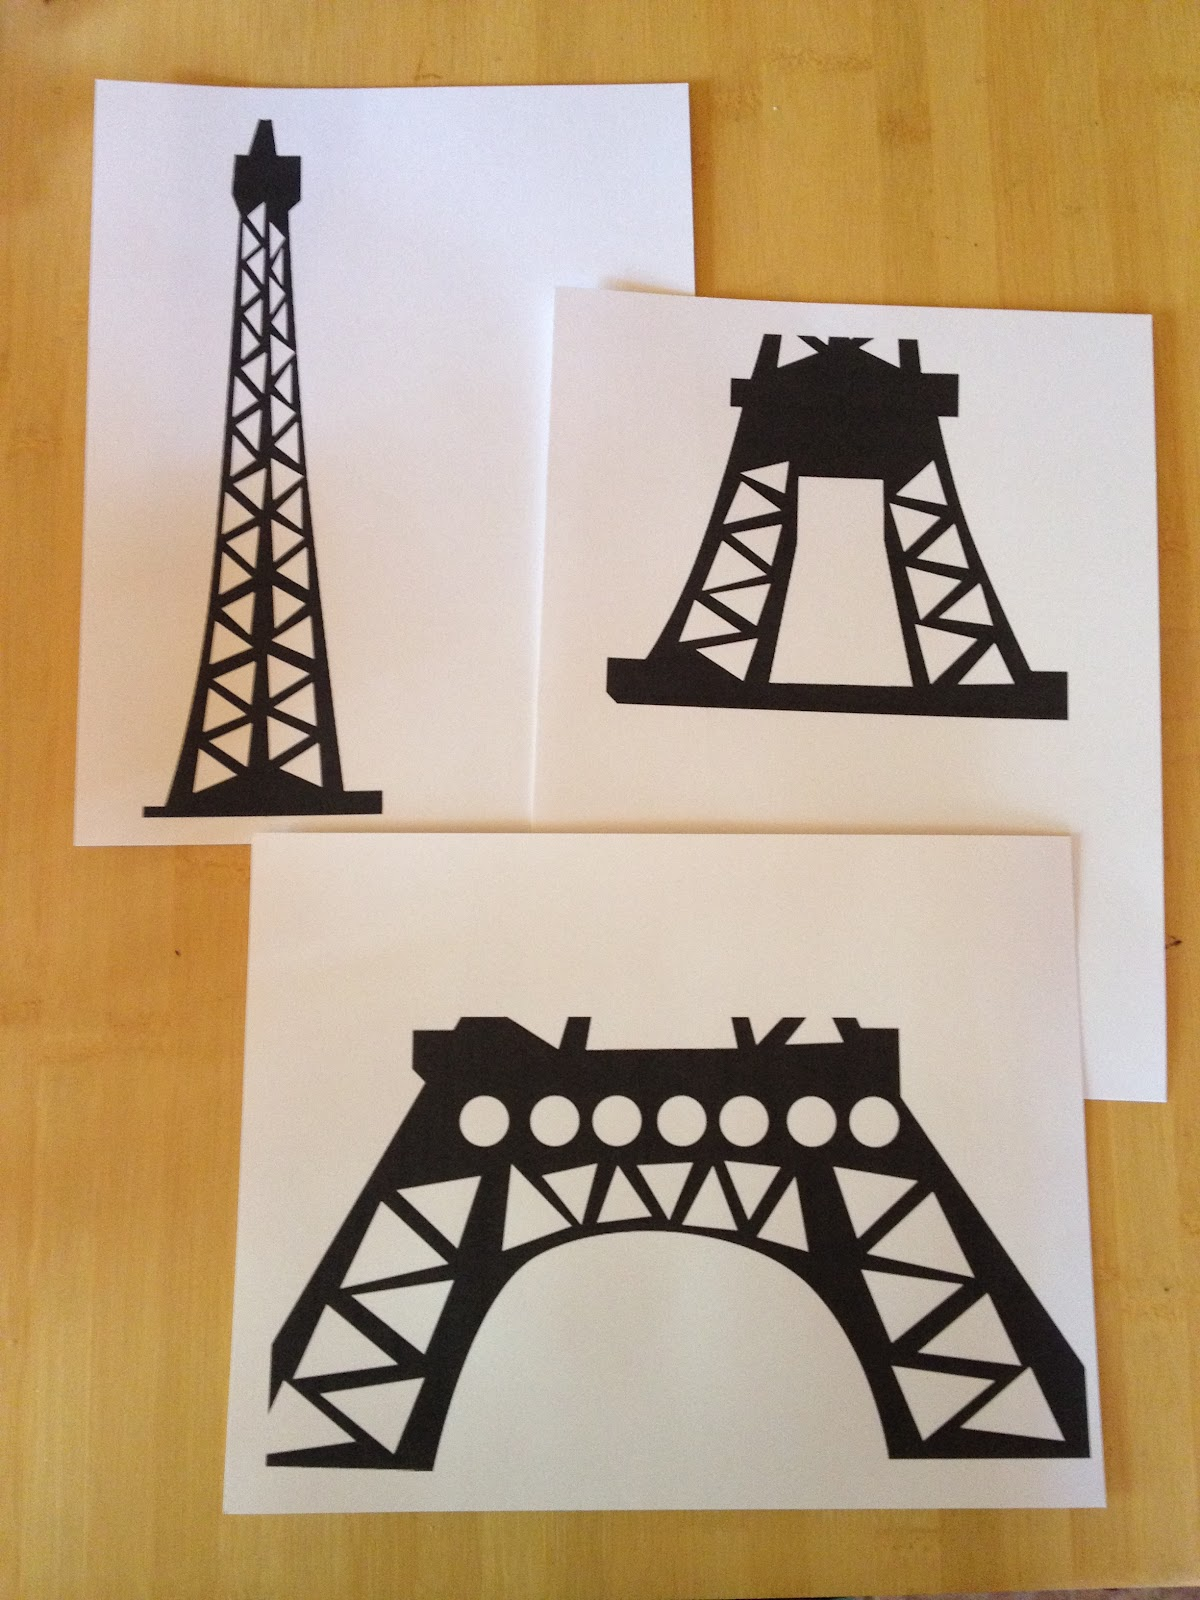 Liddy b and me eiffel tower paper project for Eiffel tower model template